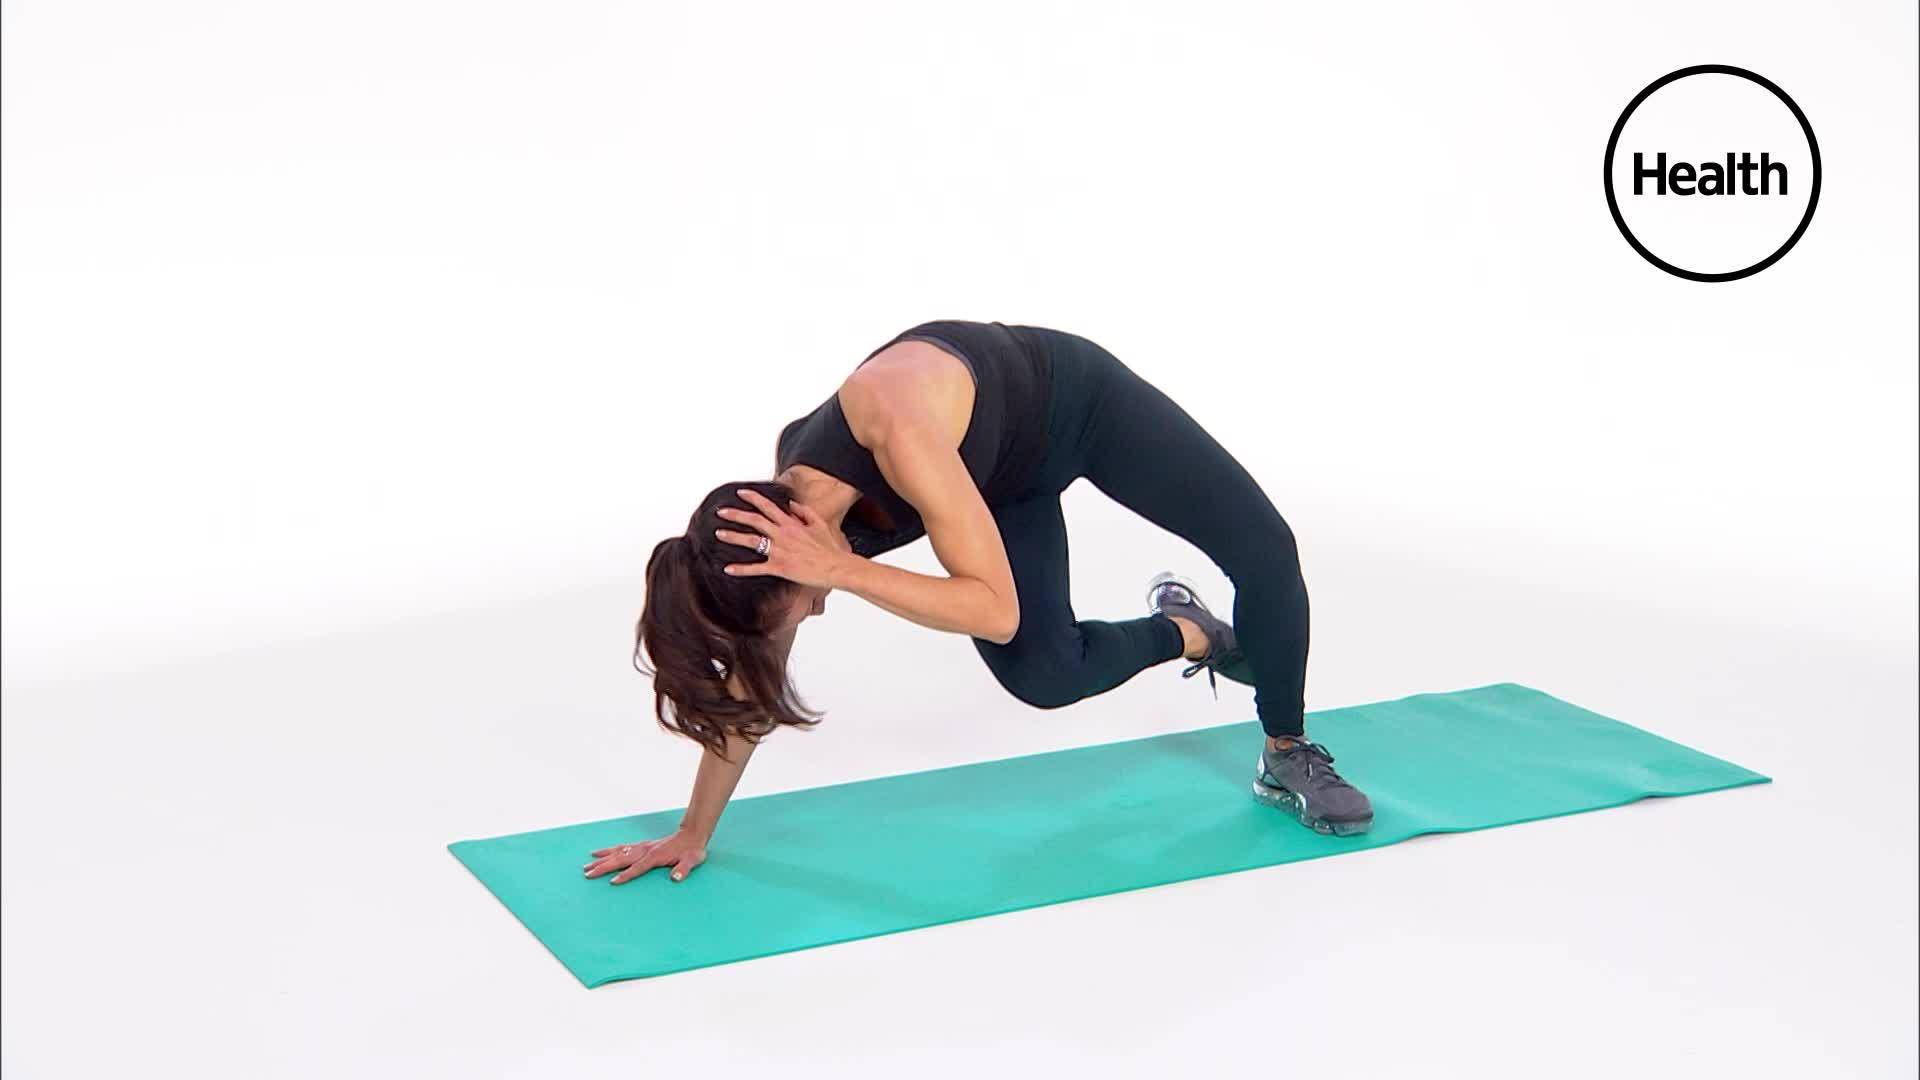 Transform Your Core With This No-Equipment 10-Minute Ab Workout